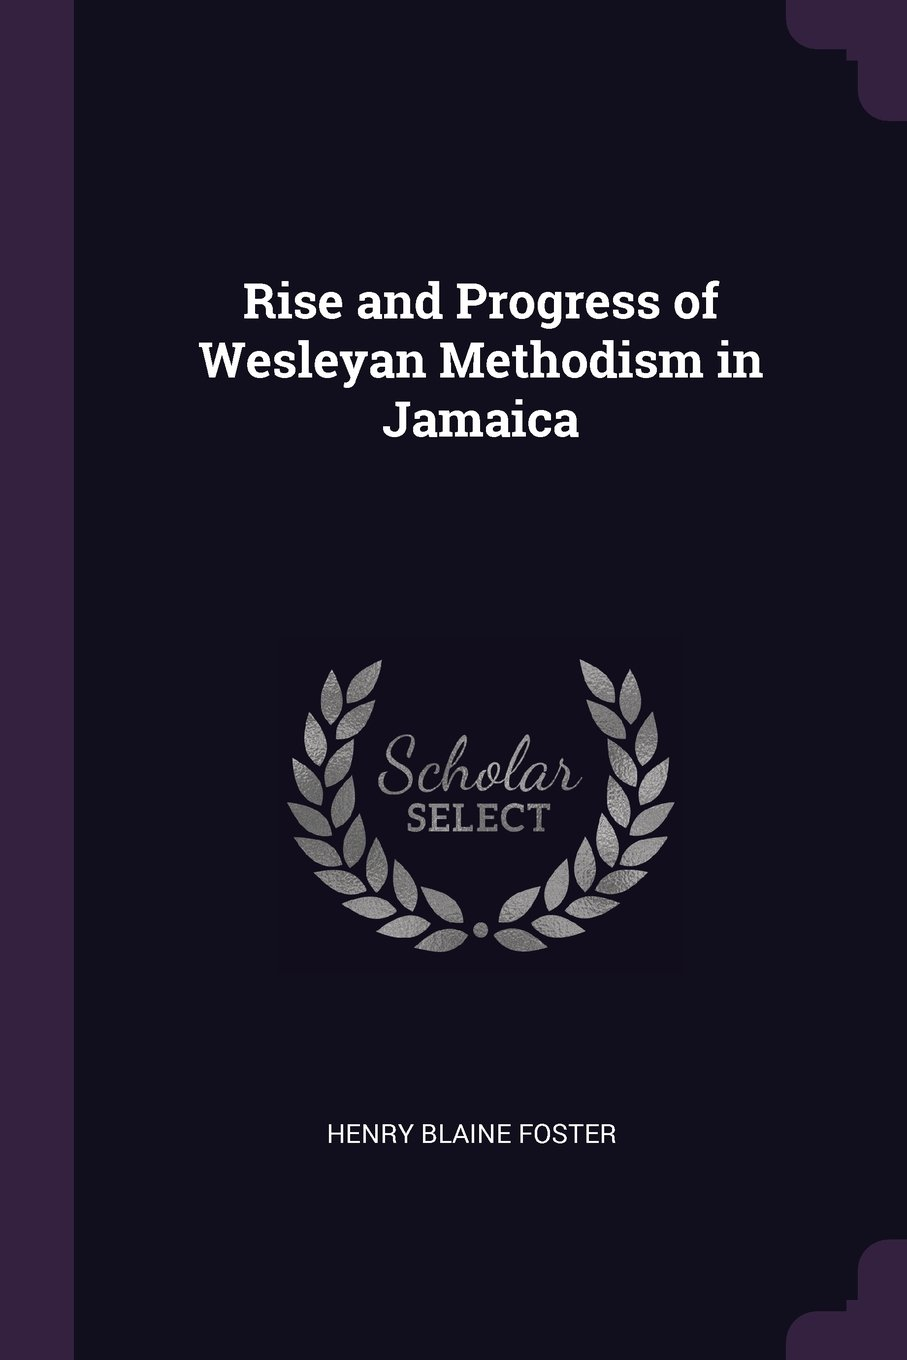 Rise and Progress of Wesleyan Methodism in Jamaica